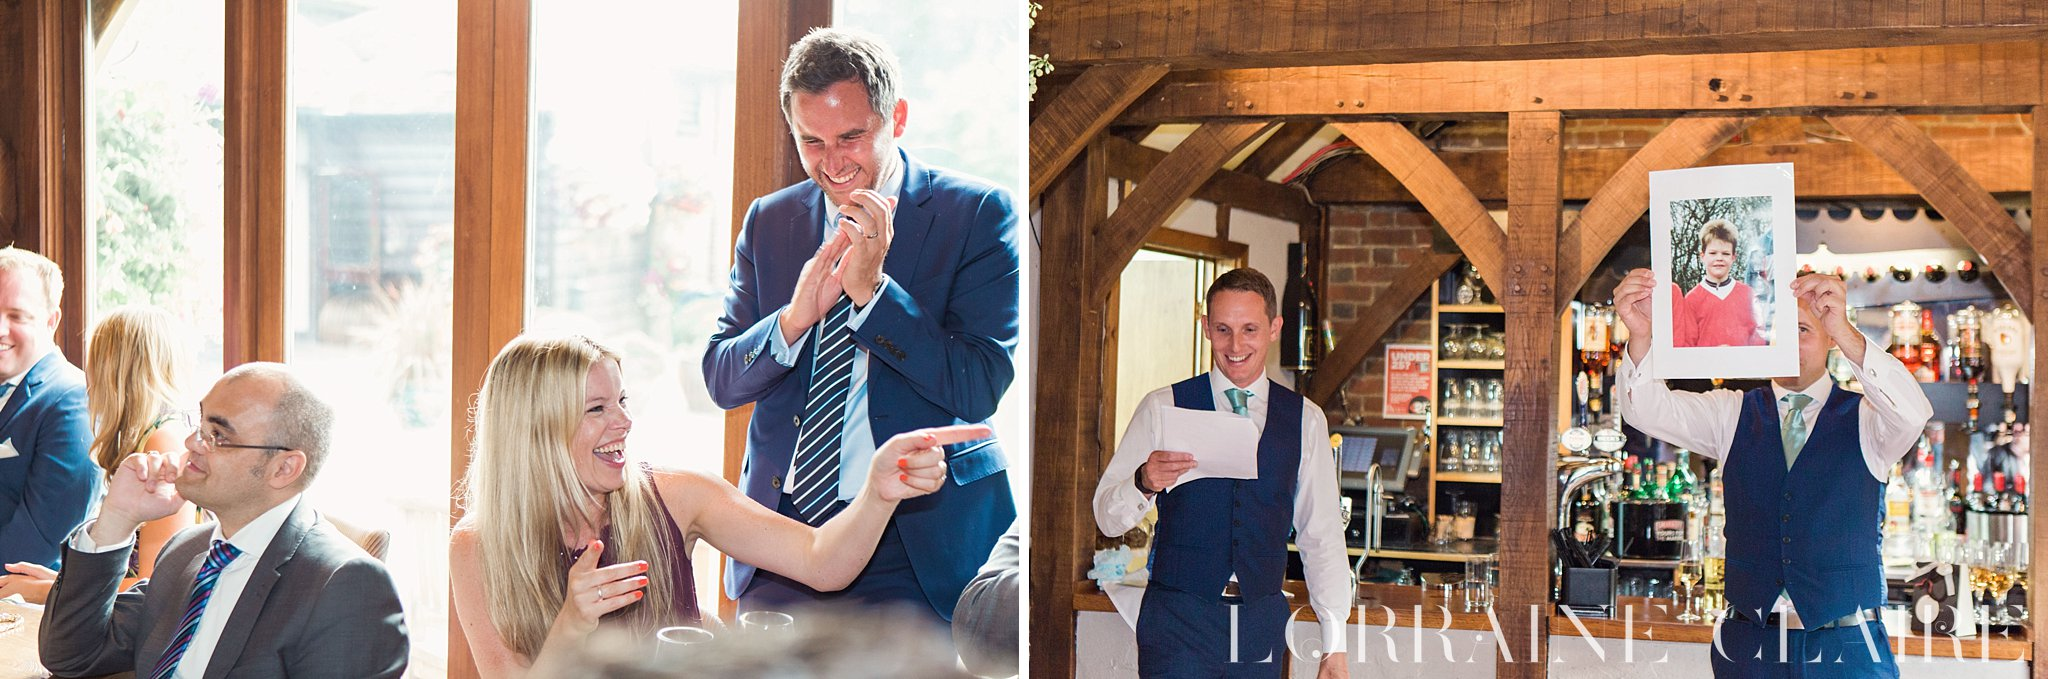 Cooling Castle Barn Wedding Photography_0040